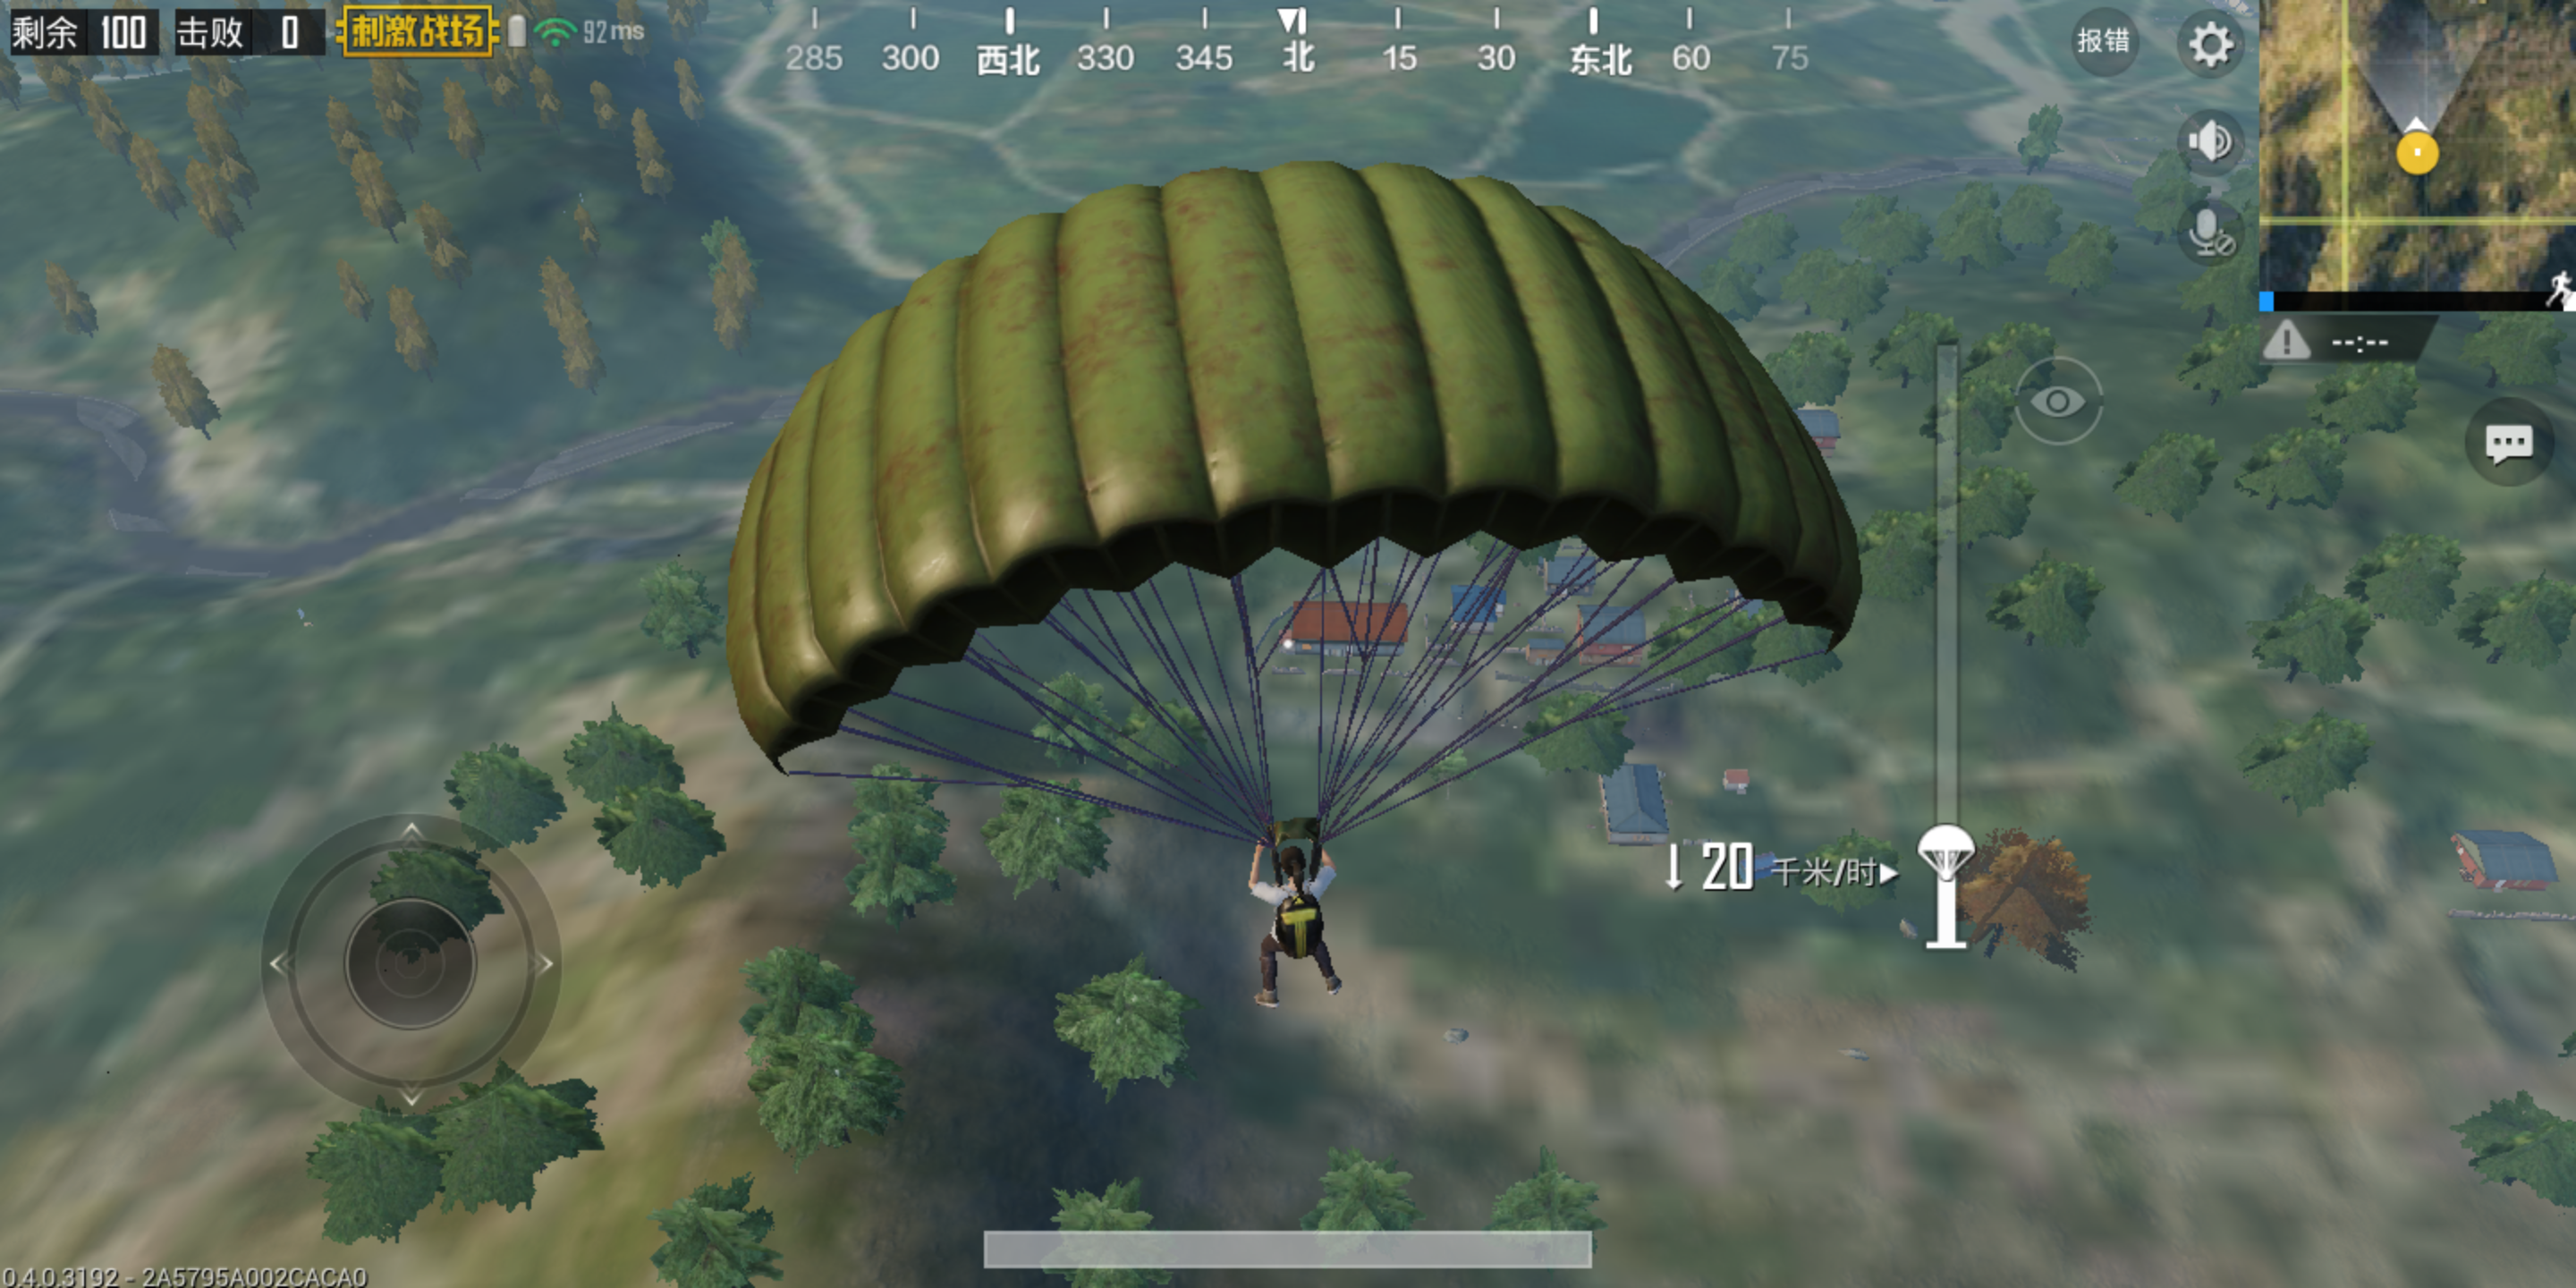 PUBG on your phone is better than you'd expect - The Verge